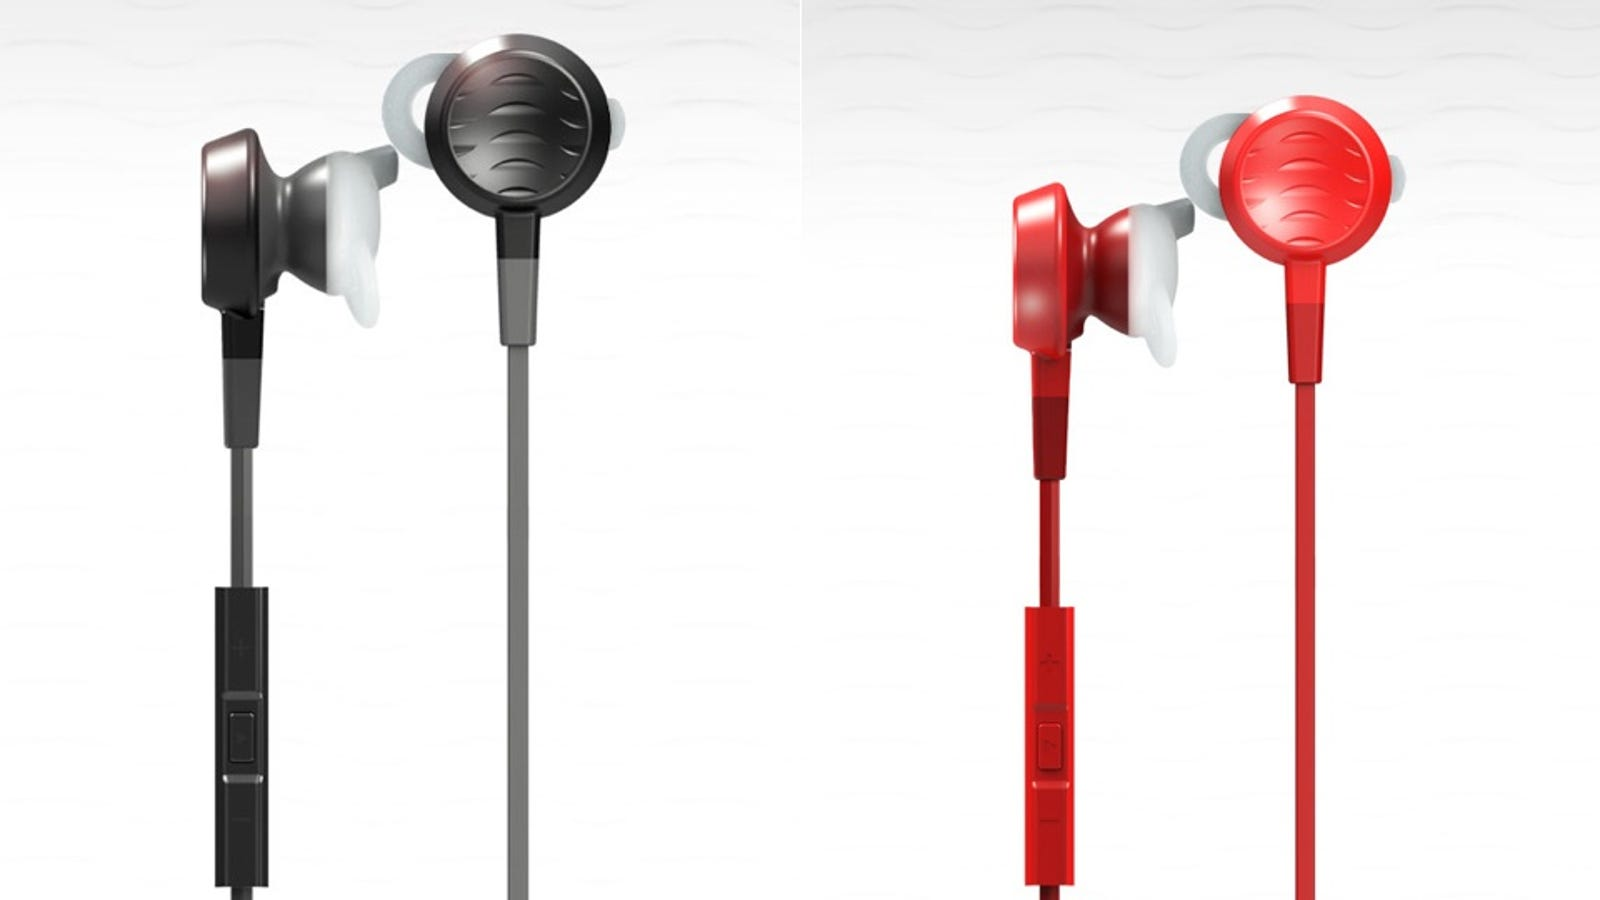 skullcandy flat wire earbuds - Put a Wang in Your Ear Hole